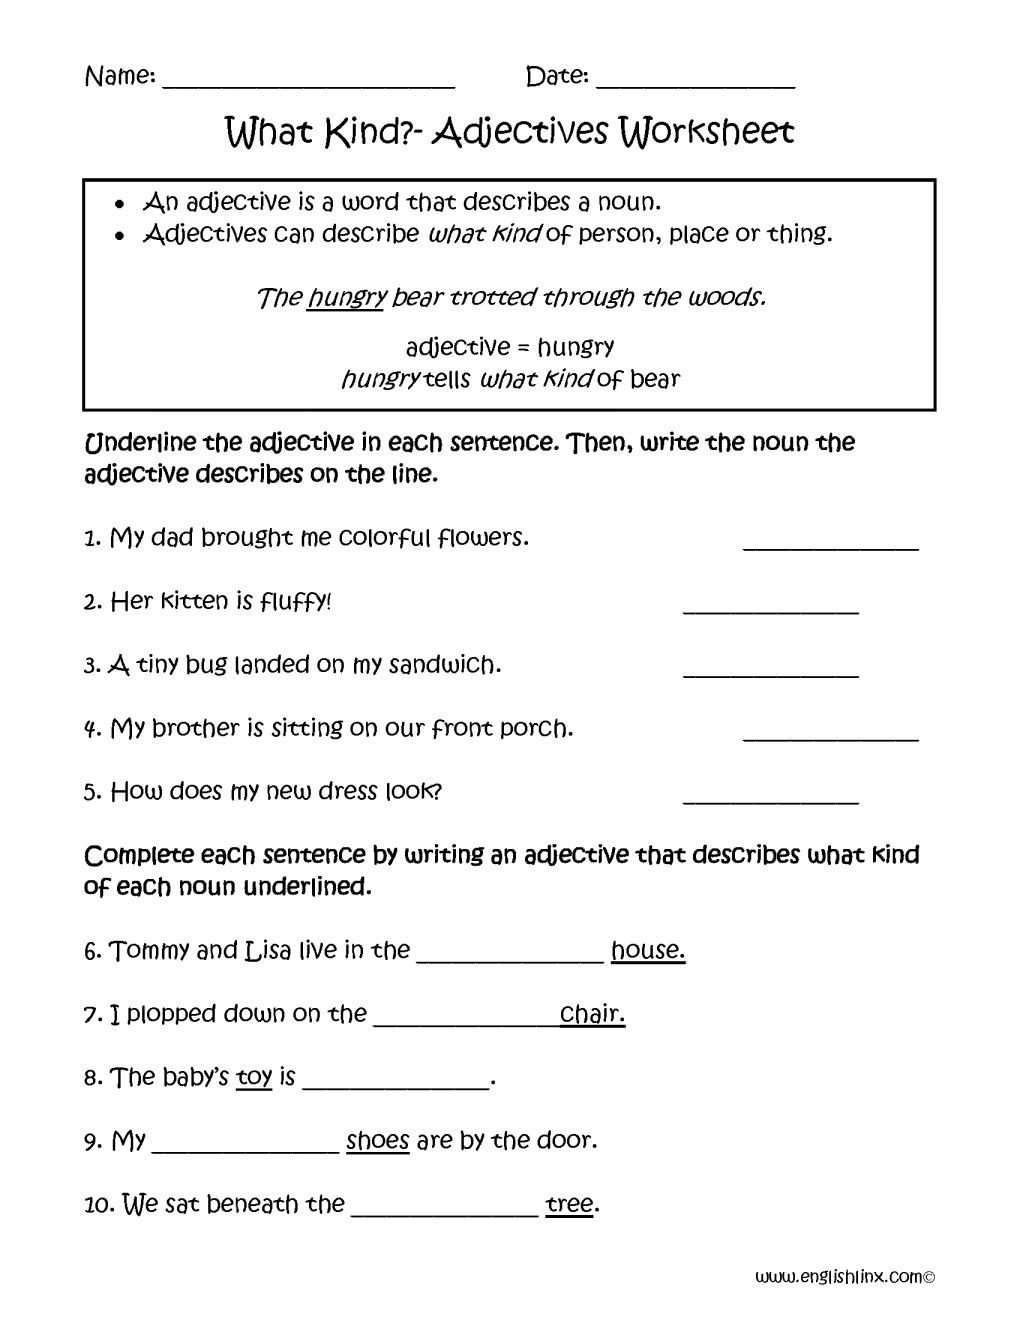 free adjective worksheets 4th grade